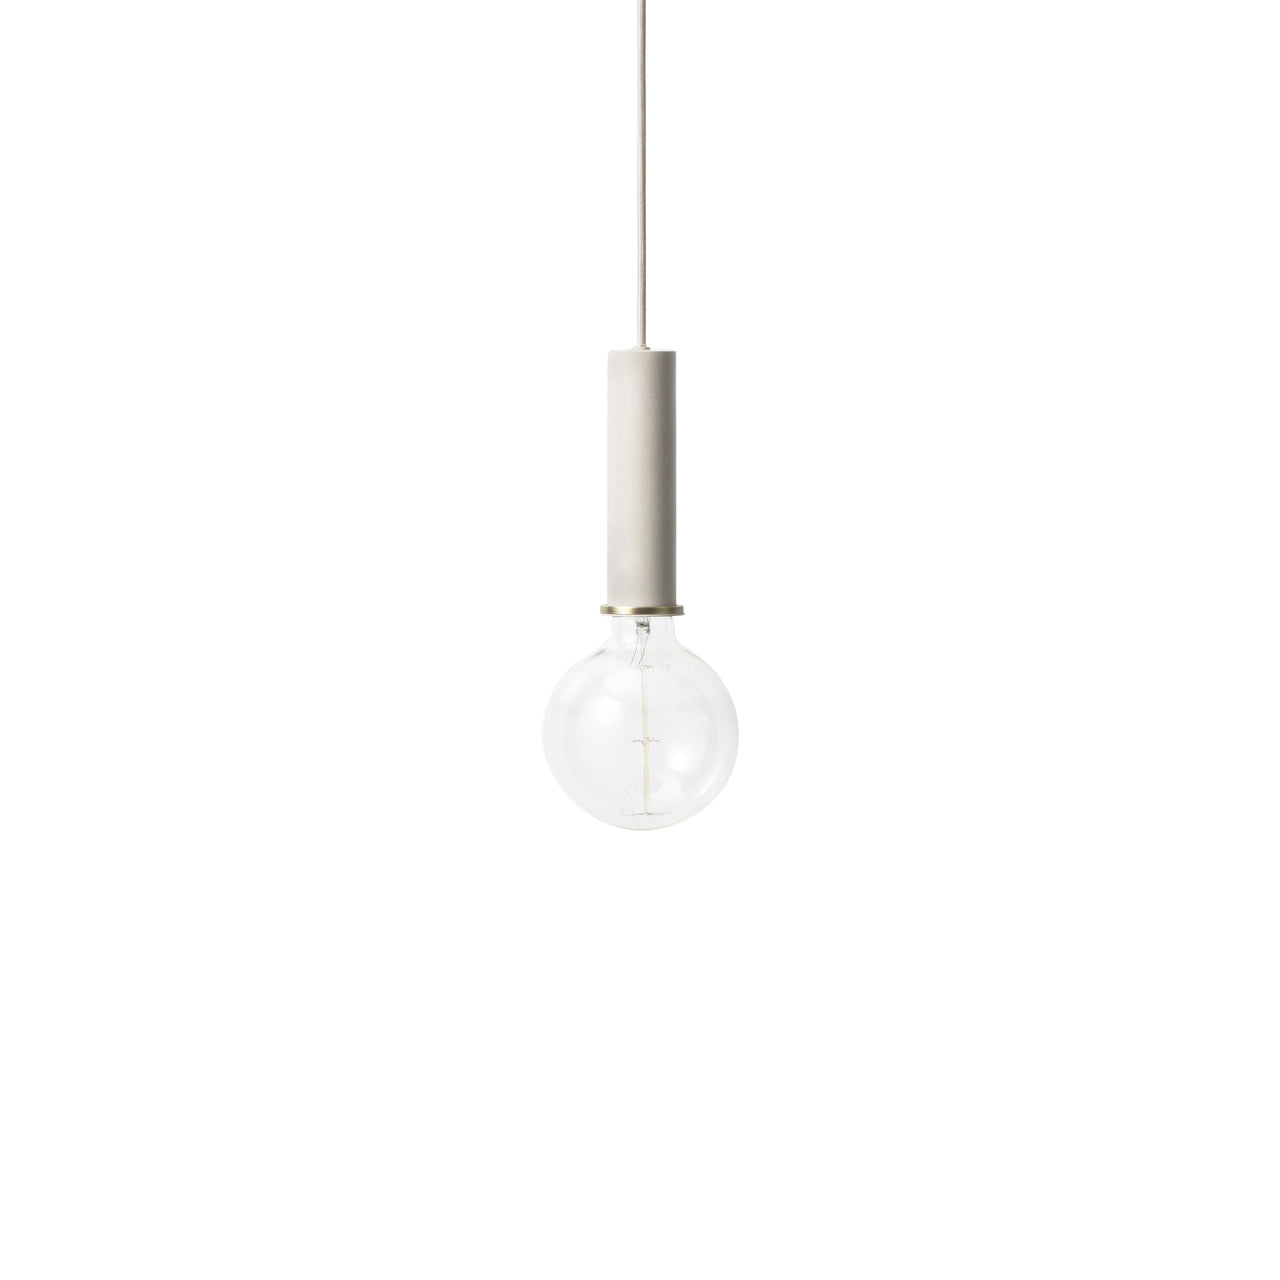 Collect Lighting: Pendant + High + Light Grey